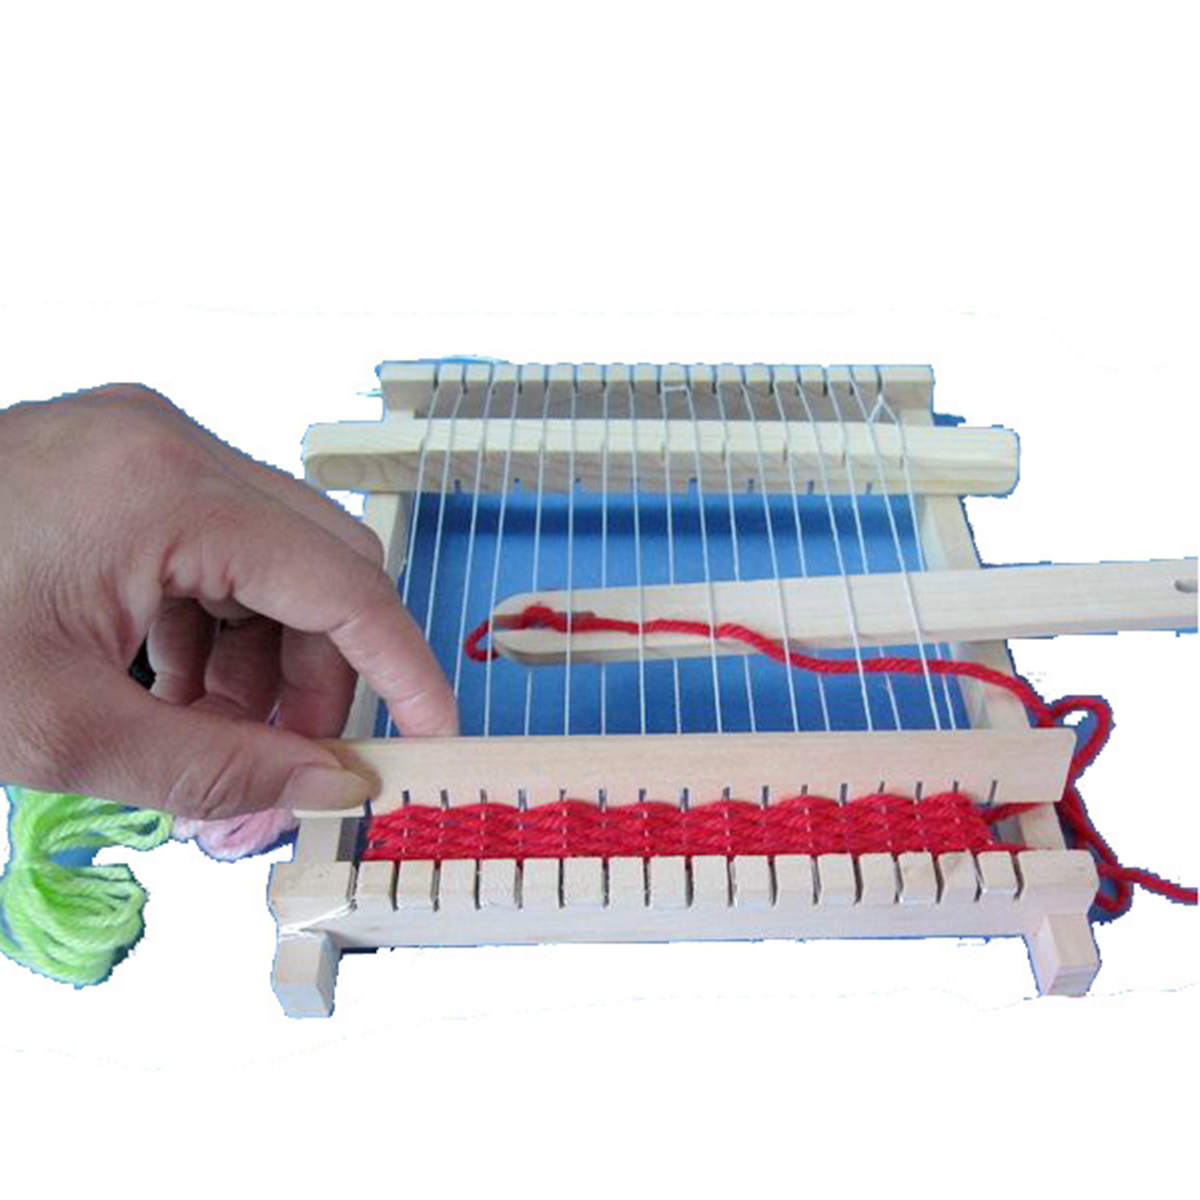 JX-LCLYL Traditional Wooden Knitting Weaving Toy Loom With Accessories Children Craft Box